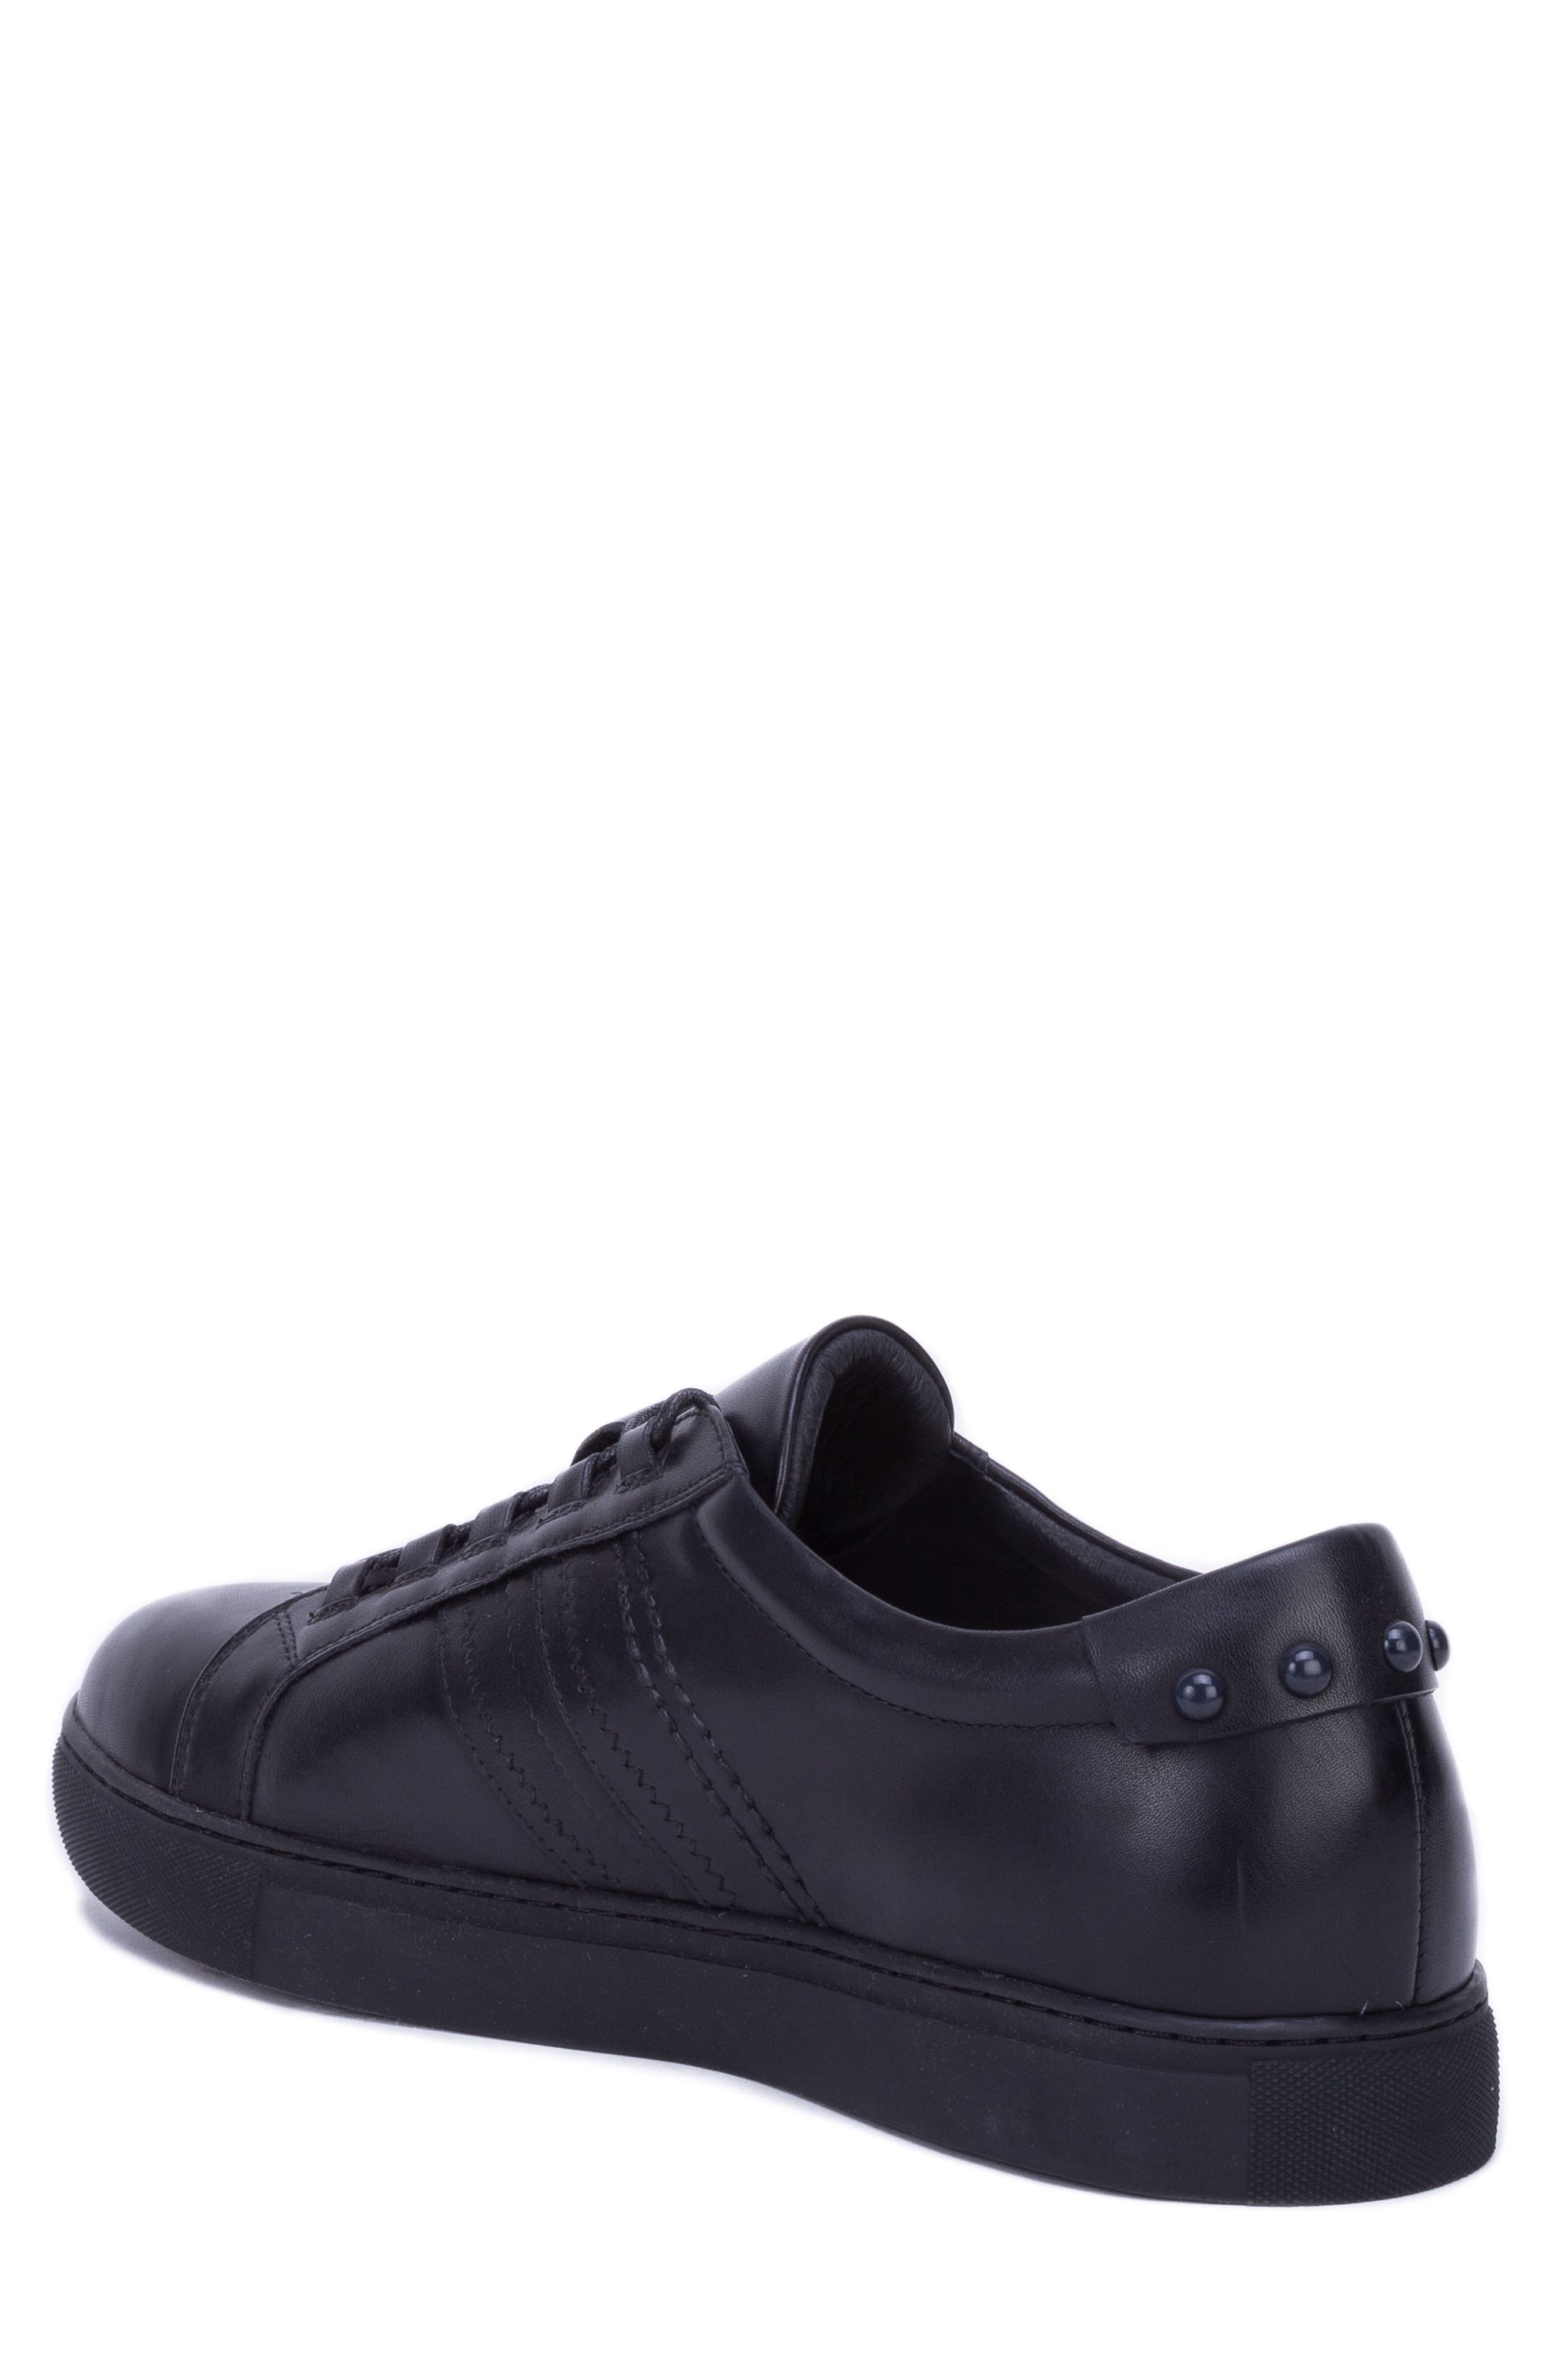 Horton Studded Low Top Sneaker,                             Alternate thumbnail 2, color,                             BLACK LEATHER